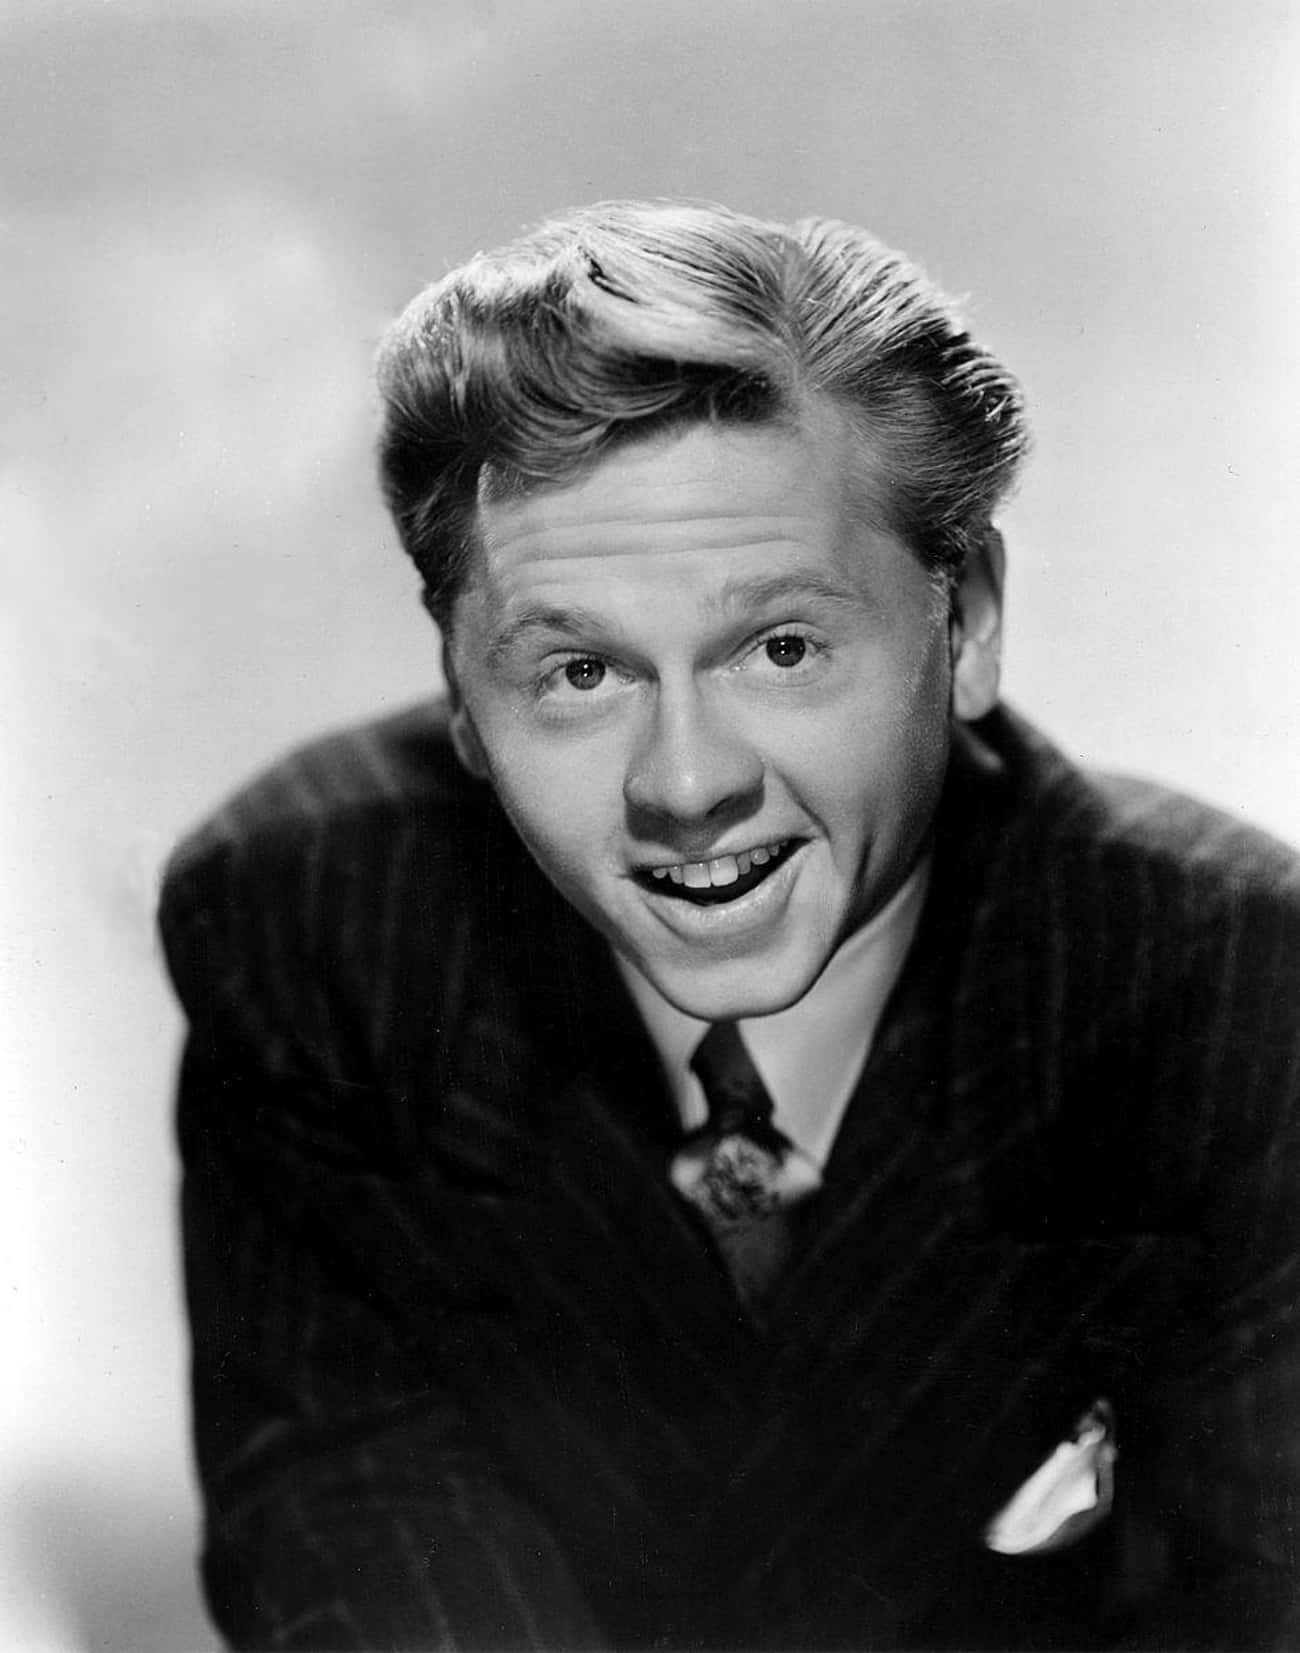 Mickey Rooney - 8 Marriages is listed (or ranked) 4 on the list Celebrities Who Have Been Married 4 (or More!) Times